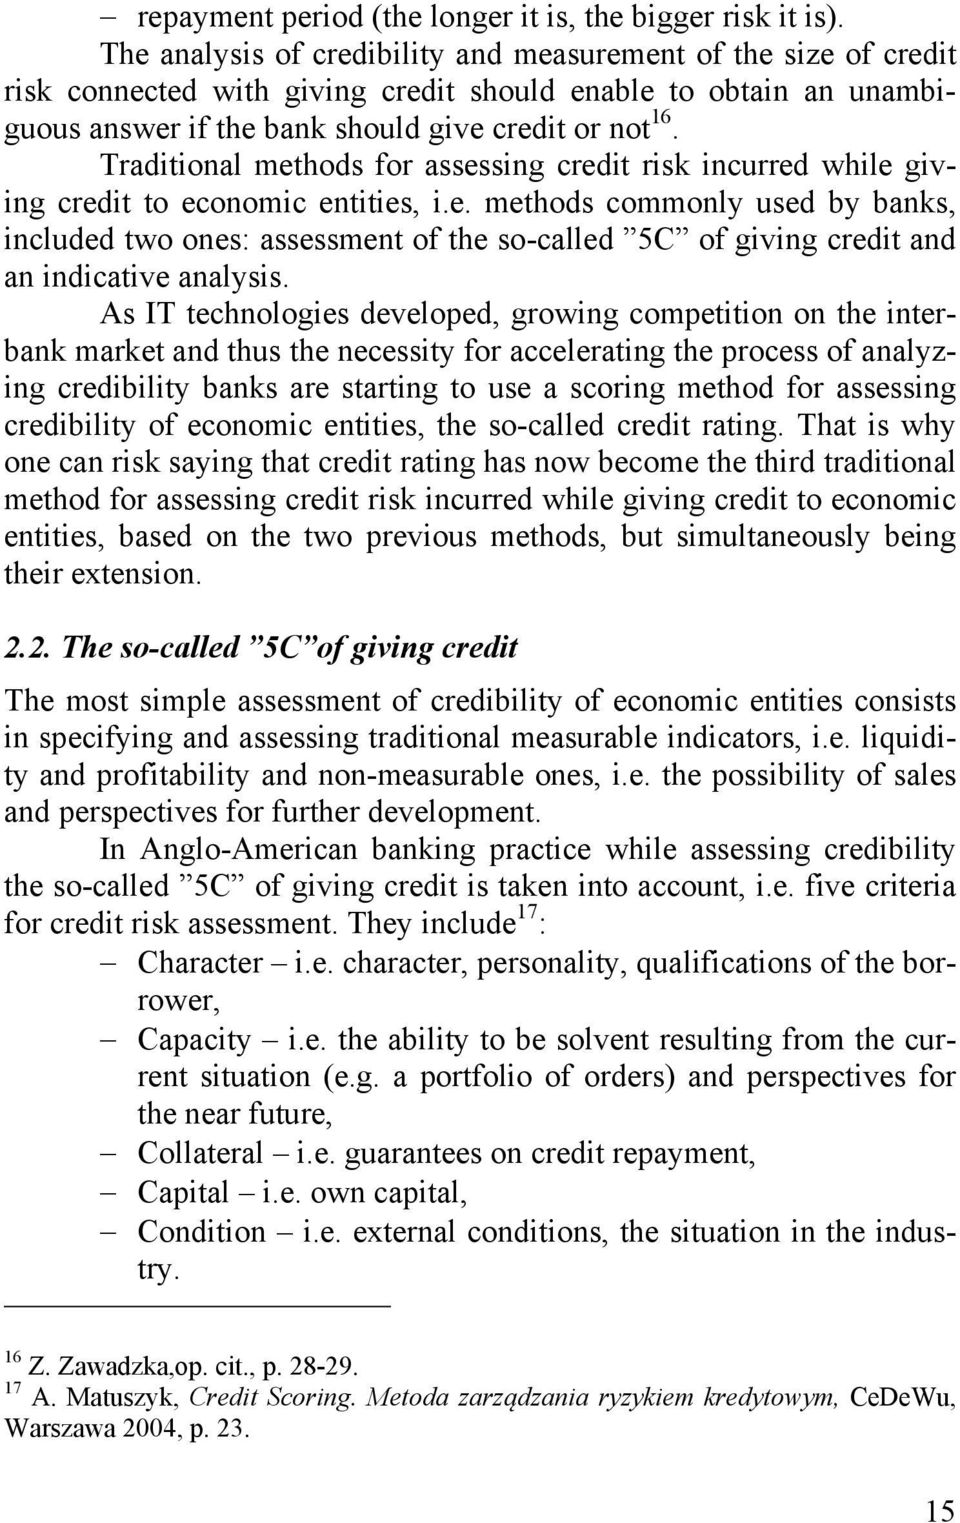 Traditional methods for assessing credit risk incurred while giving credit to economic entities, i.e. methods commonly used by banks, included two ones: assessment of the so-called 5C of giving credit and an indicative analysis.